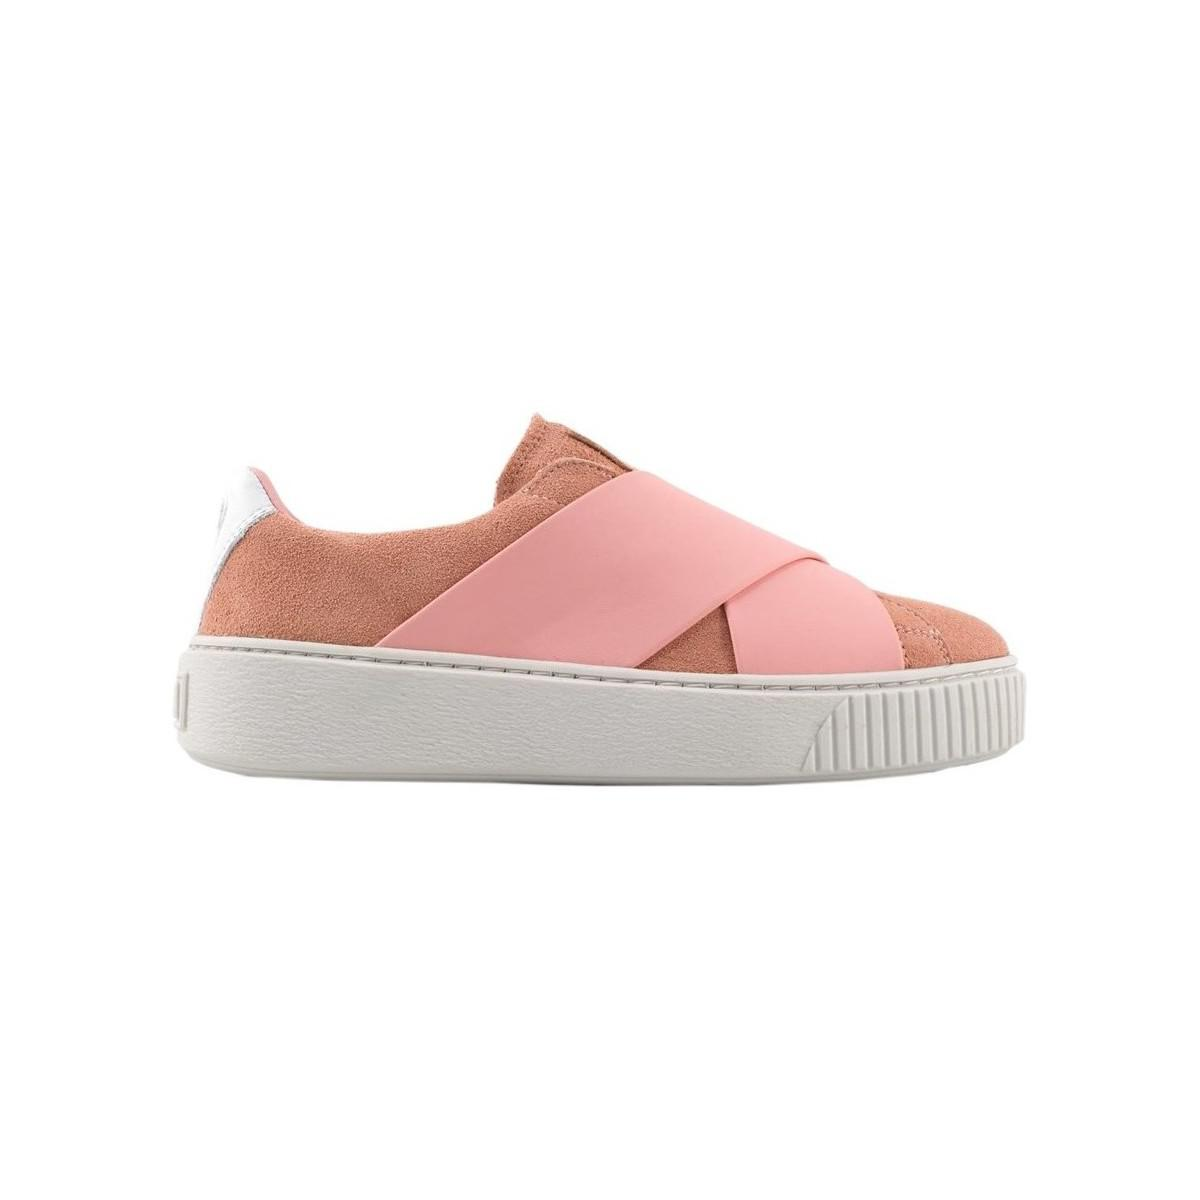 Puma Platform X Wns Men s Slip-ons (shoes) In Multicolour in Pink ... 1678fce84